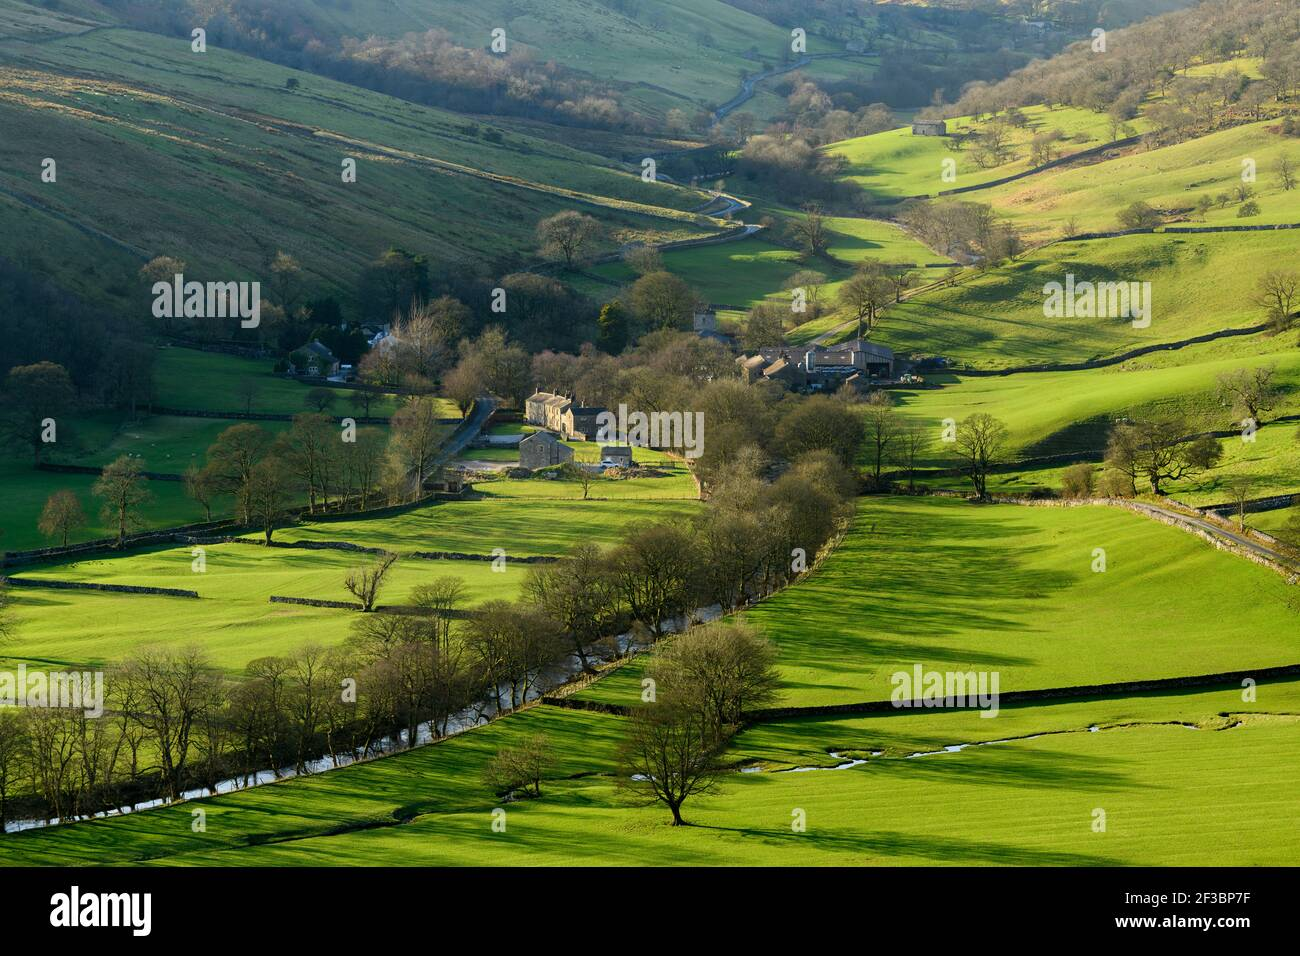 Picturesque Dales village (cottages & farms) & River Wharfe, nestling by hills & hillsides in steep-sided valley - Hubberholme, Yorkshire, England, UK Stock Photo